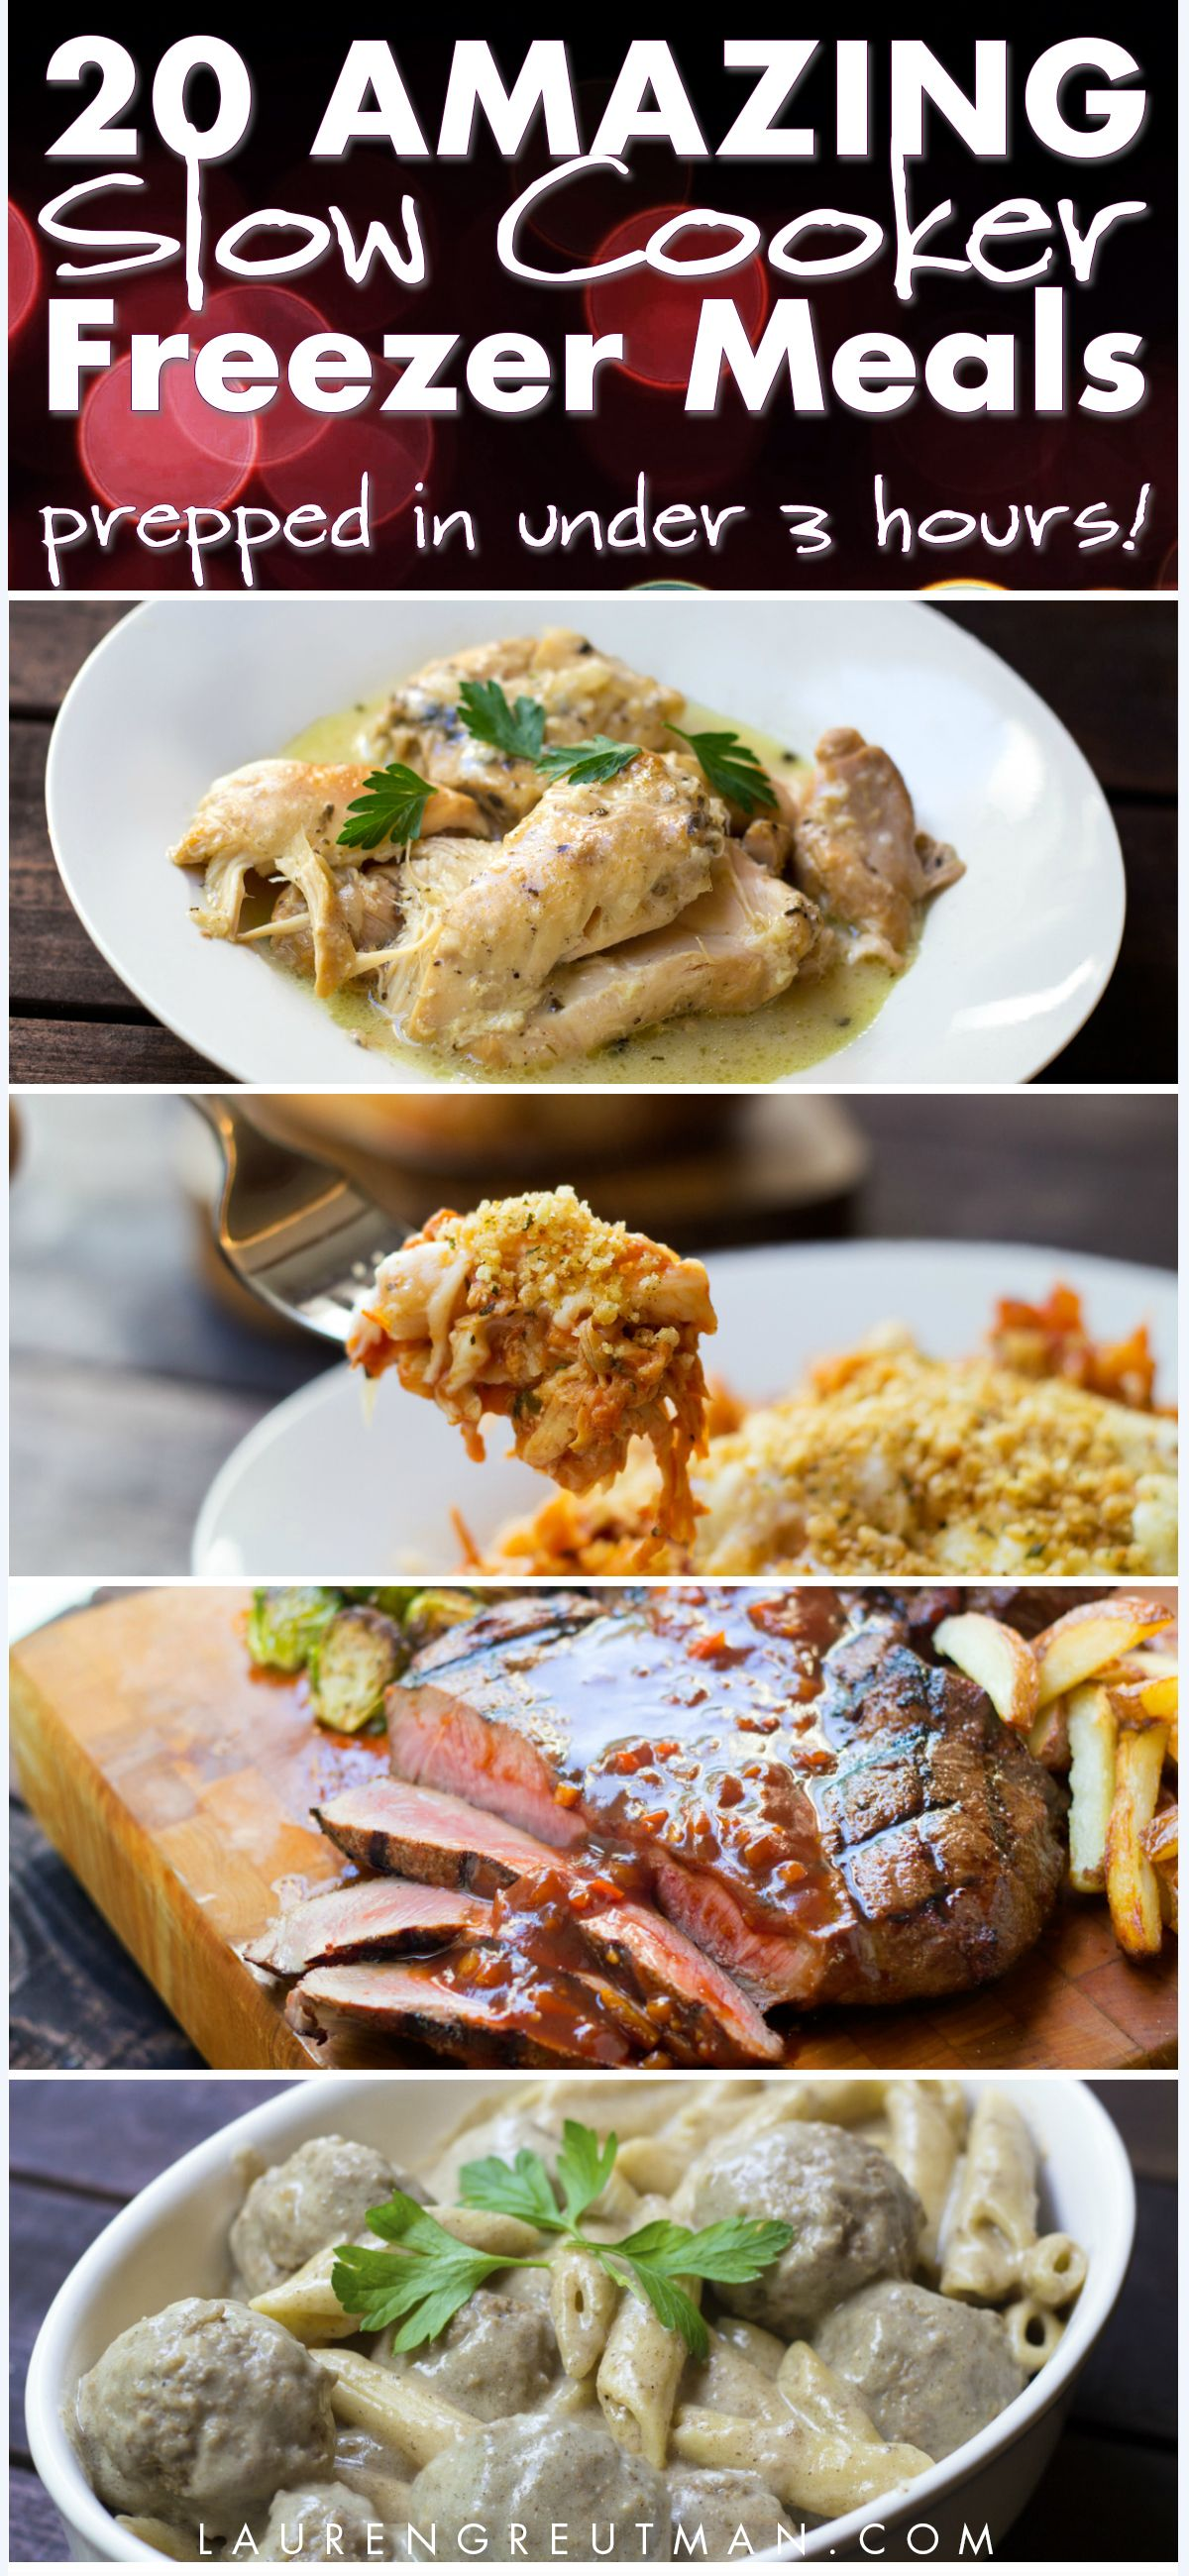 """You are gonna LOVE this! This is the 4th meal plan using the """"One Touch"""" prep system which will help you get 20 meals prepared in no time at all! Oh - and the meals are AMAZING. via @iatllauren"""